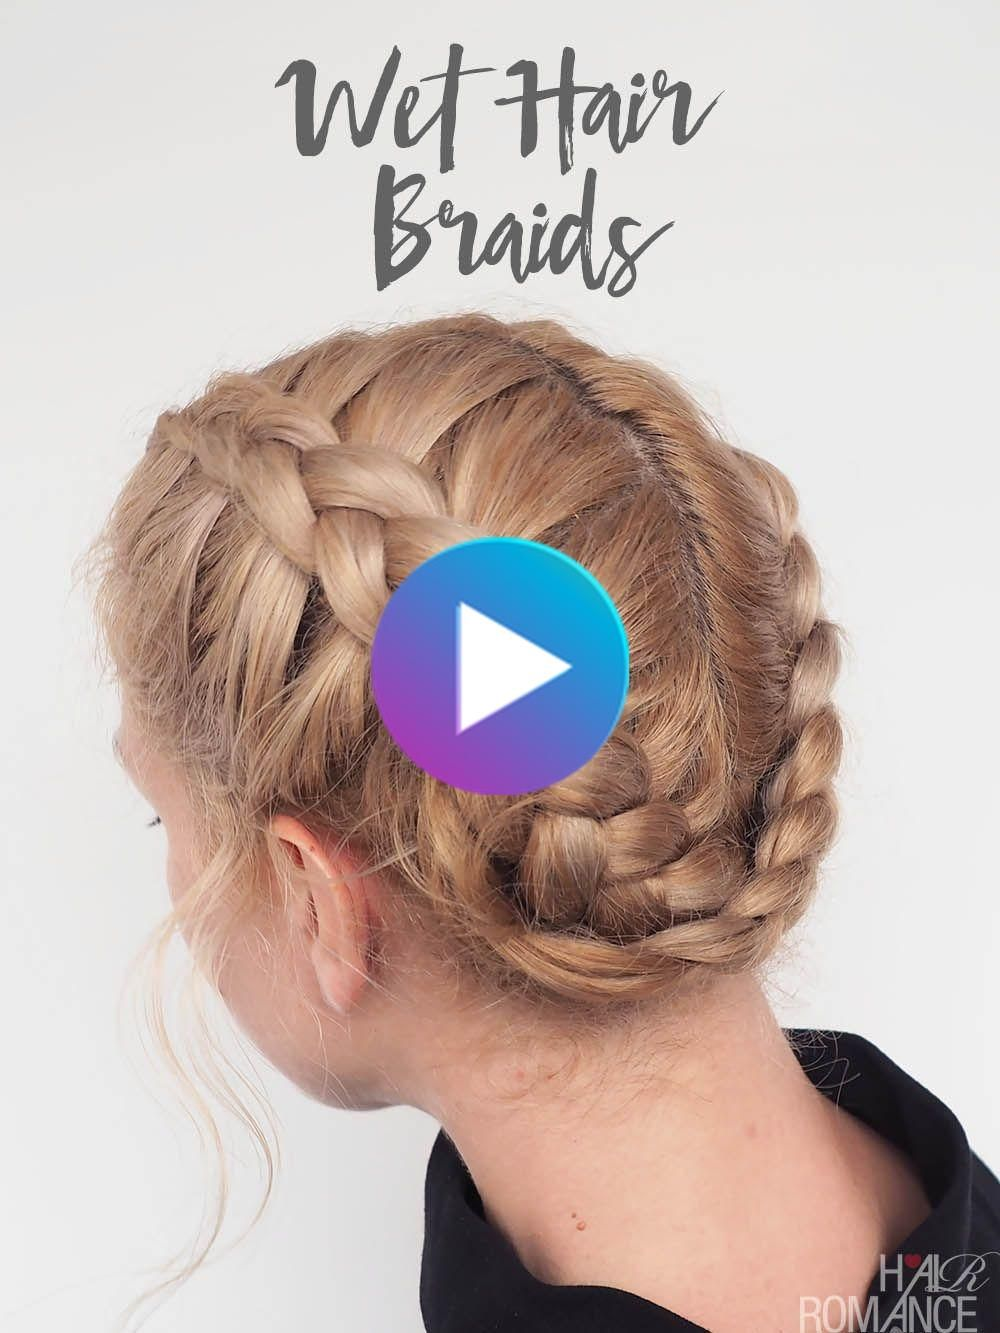 The Best Braids For Wet Hair Dutch Braid Video Tutorial In 2020 Quick Hairstyles For School Cool Hairstyles Easy Hairstyles For School